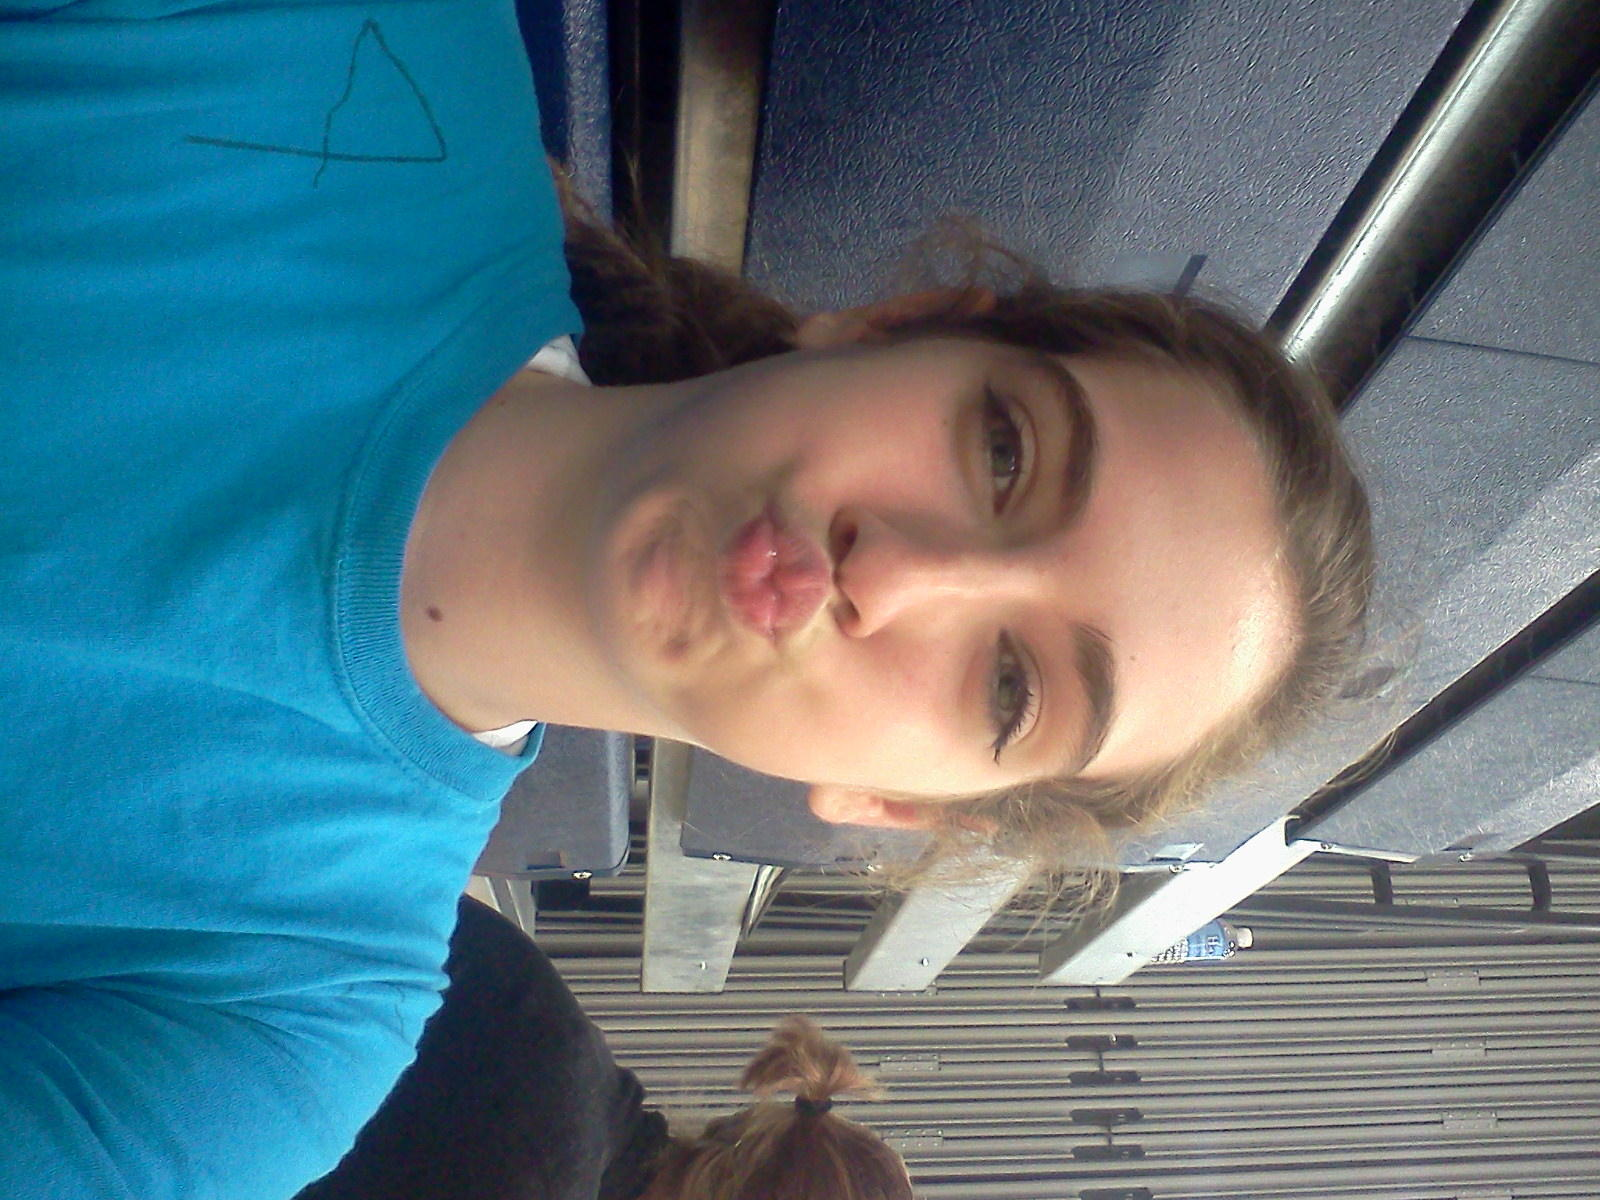 @haleycoburn64 takes beautiful selfies(; then sets them as my screensaver #loveher http://t.co/pZYy9Gi0